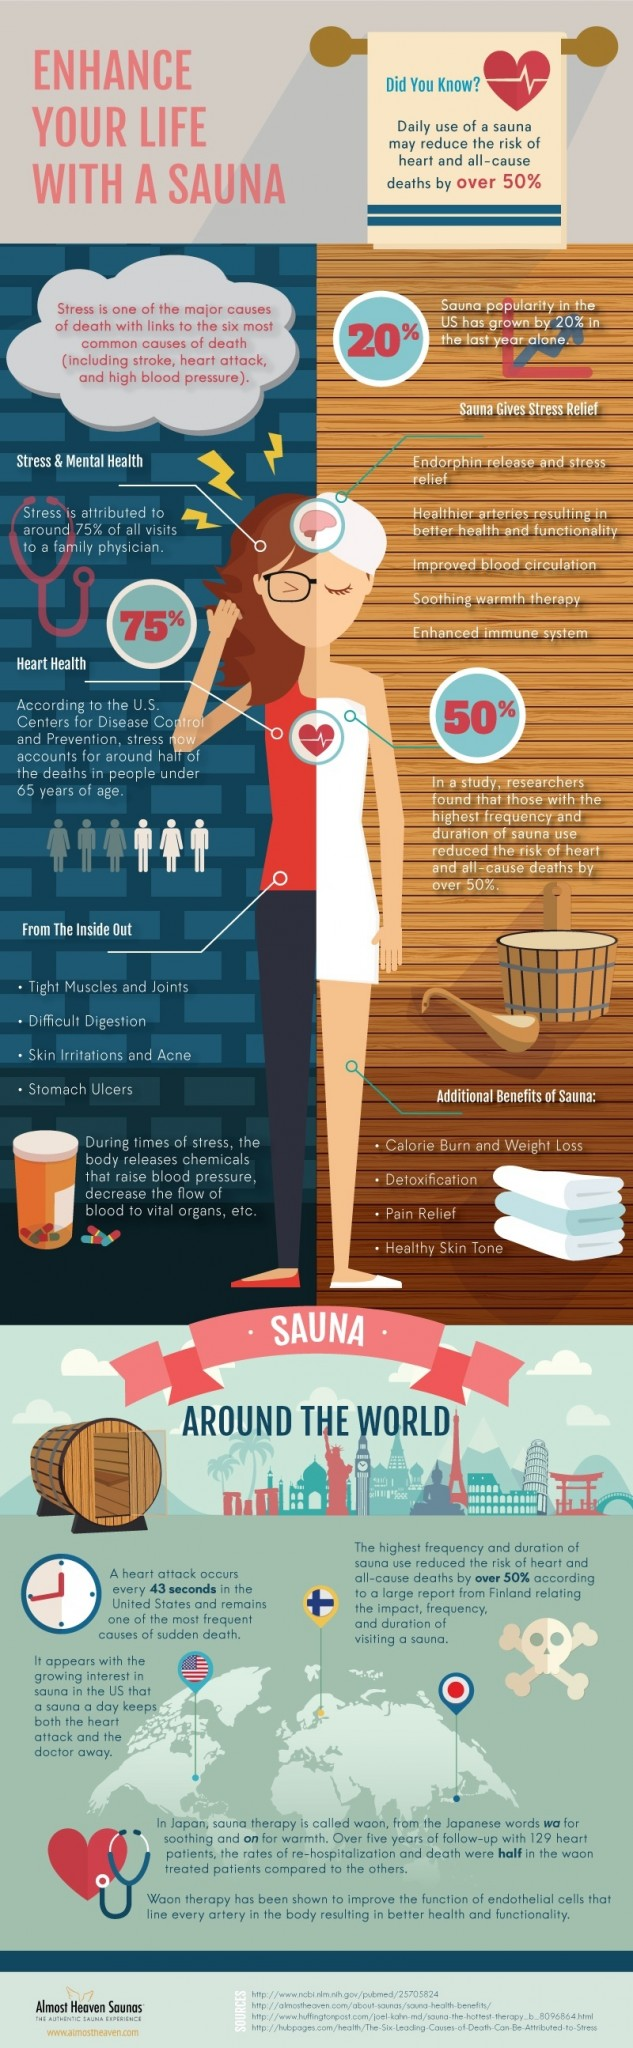 Enhance your life with Sauna